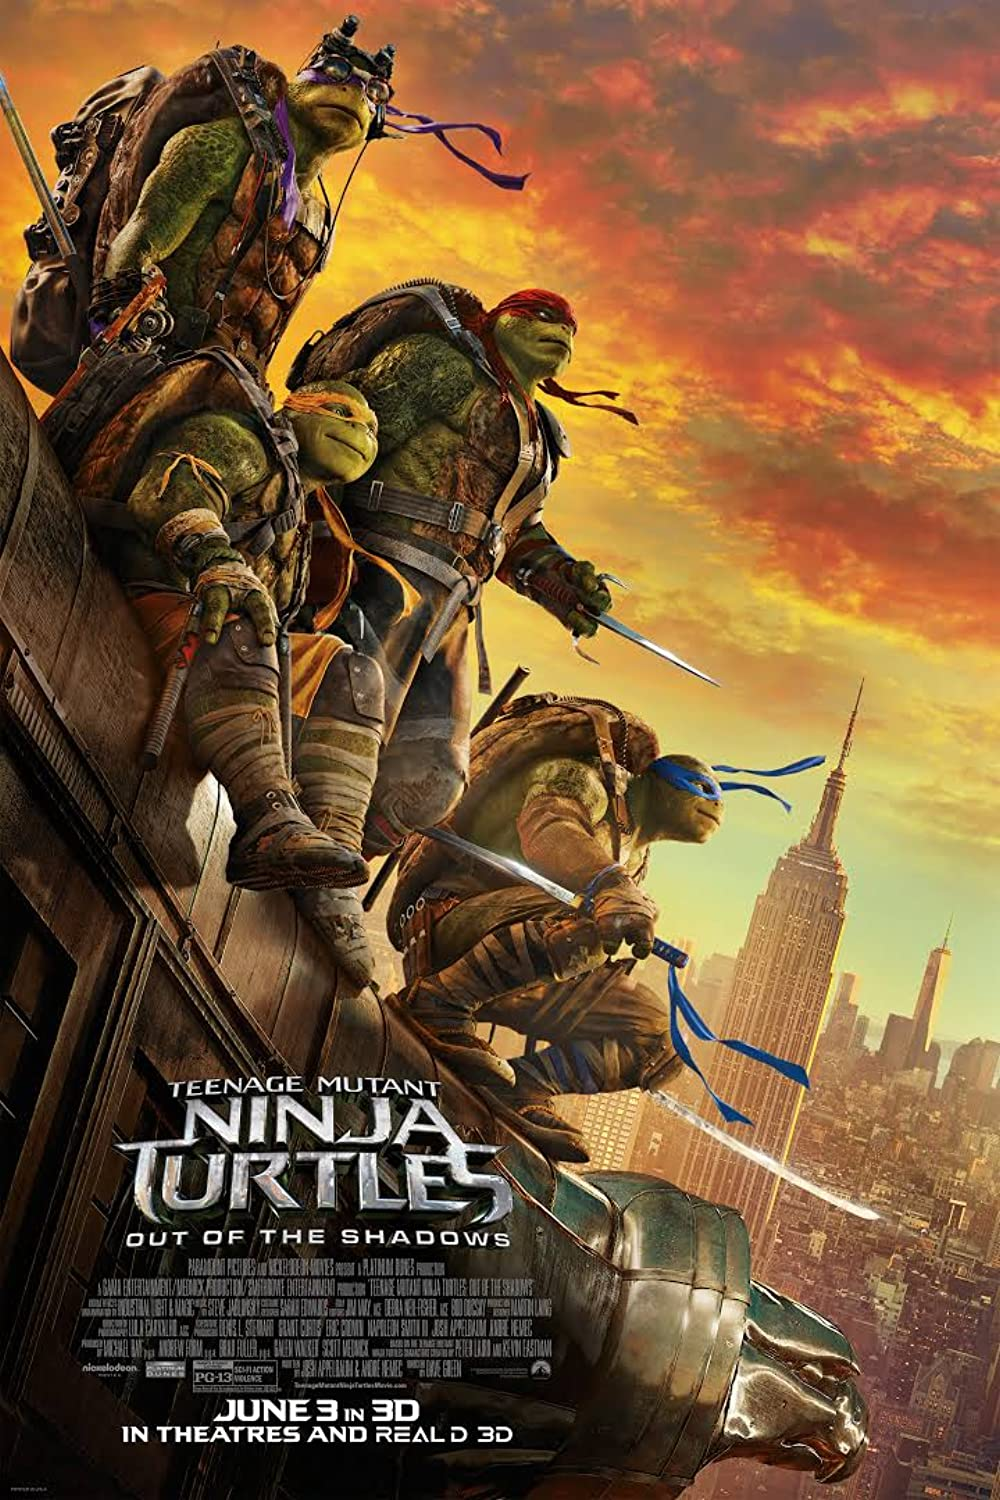 Teenage Mutant Ninja Turtles Out of the Shadows (2021) Hindi Dubbed HDRip 720p AAC